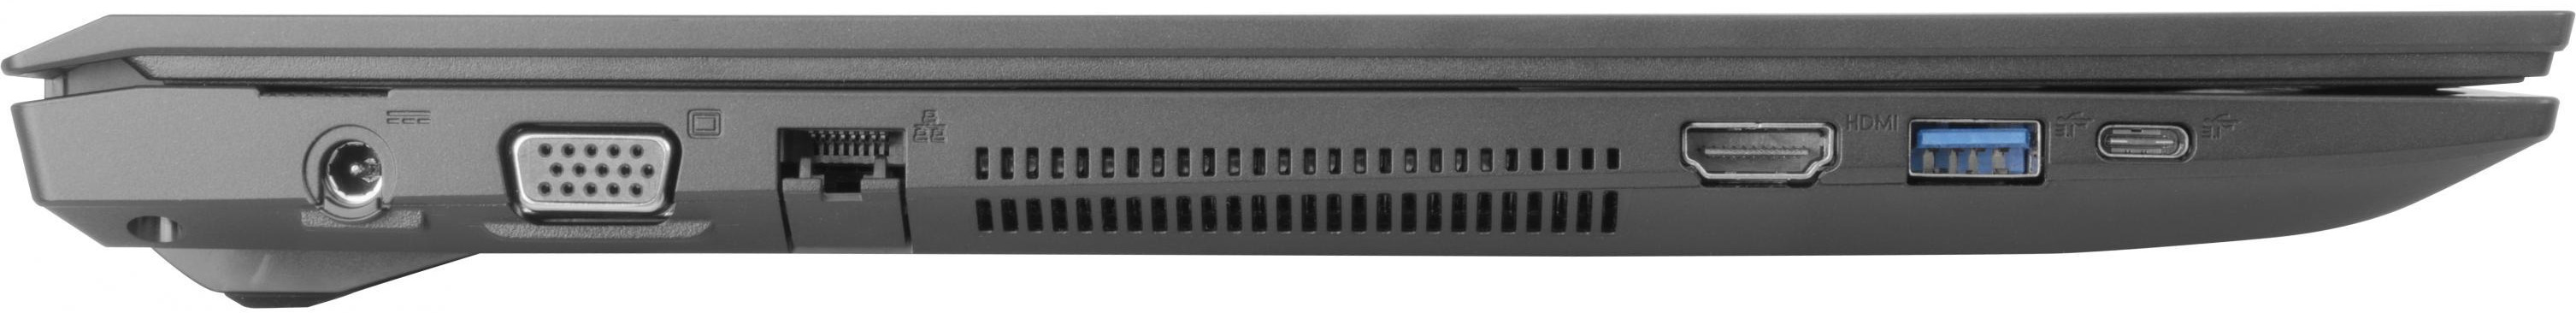 Entroware Aether Laptop Vent